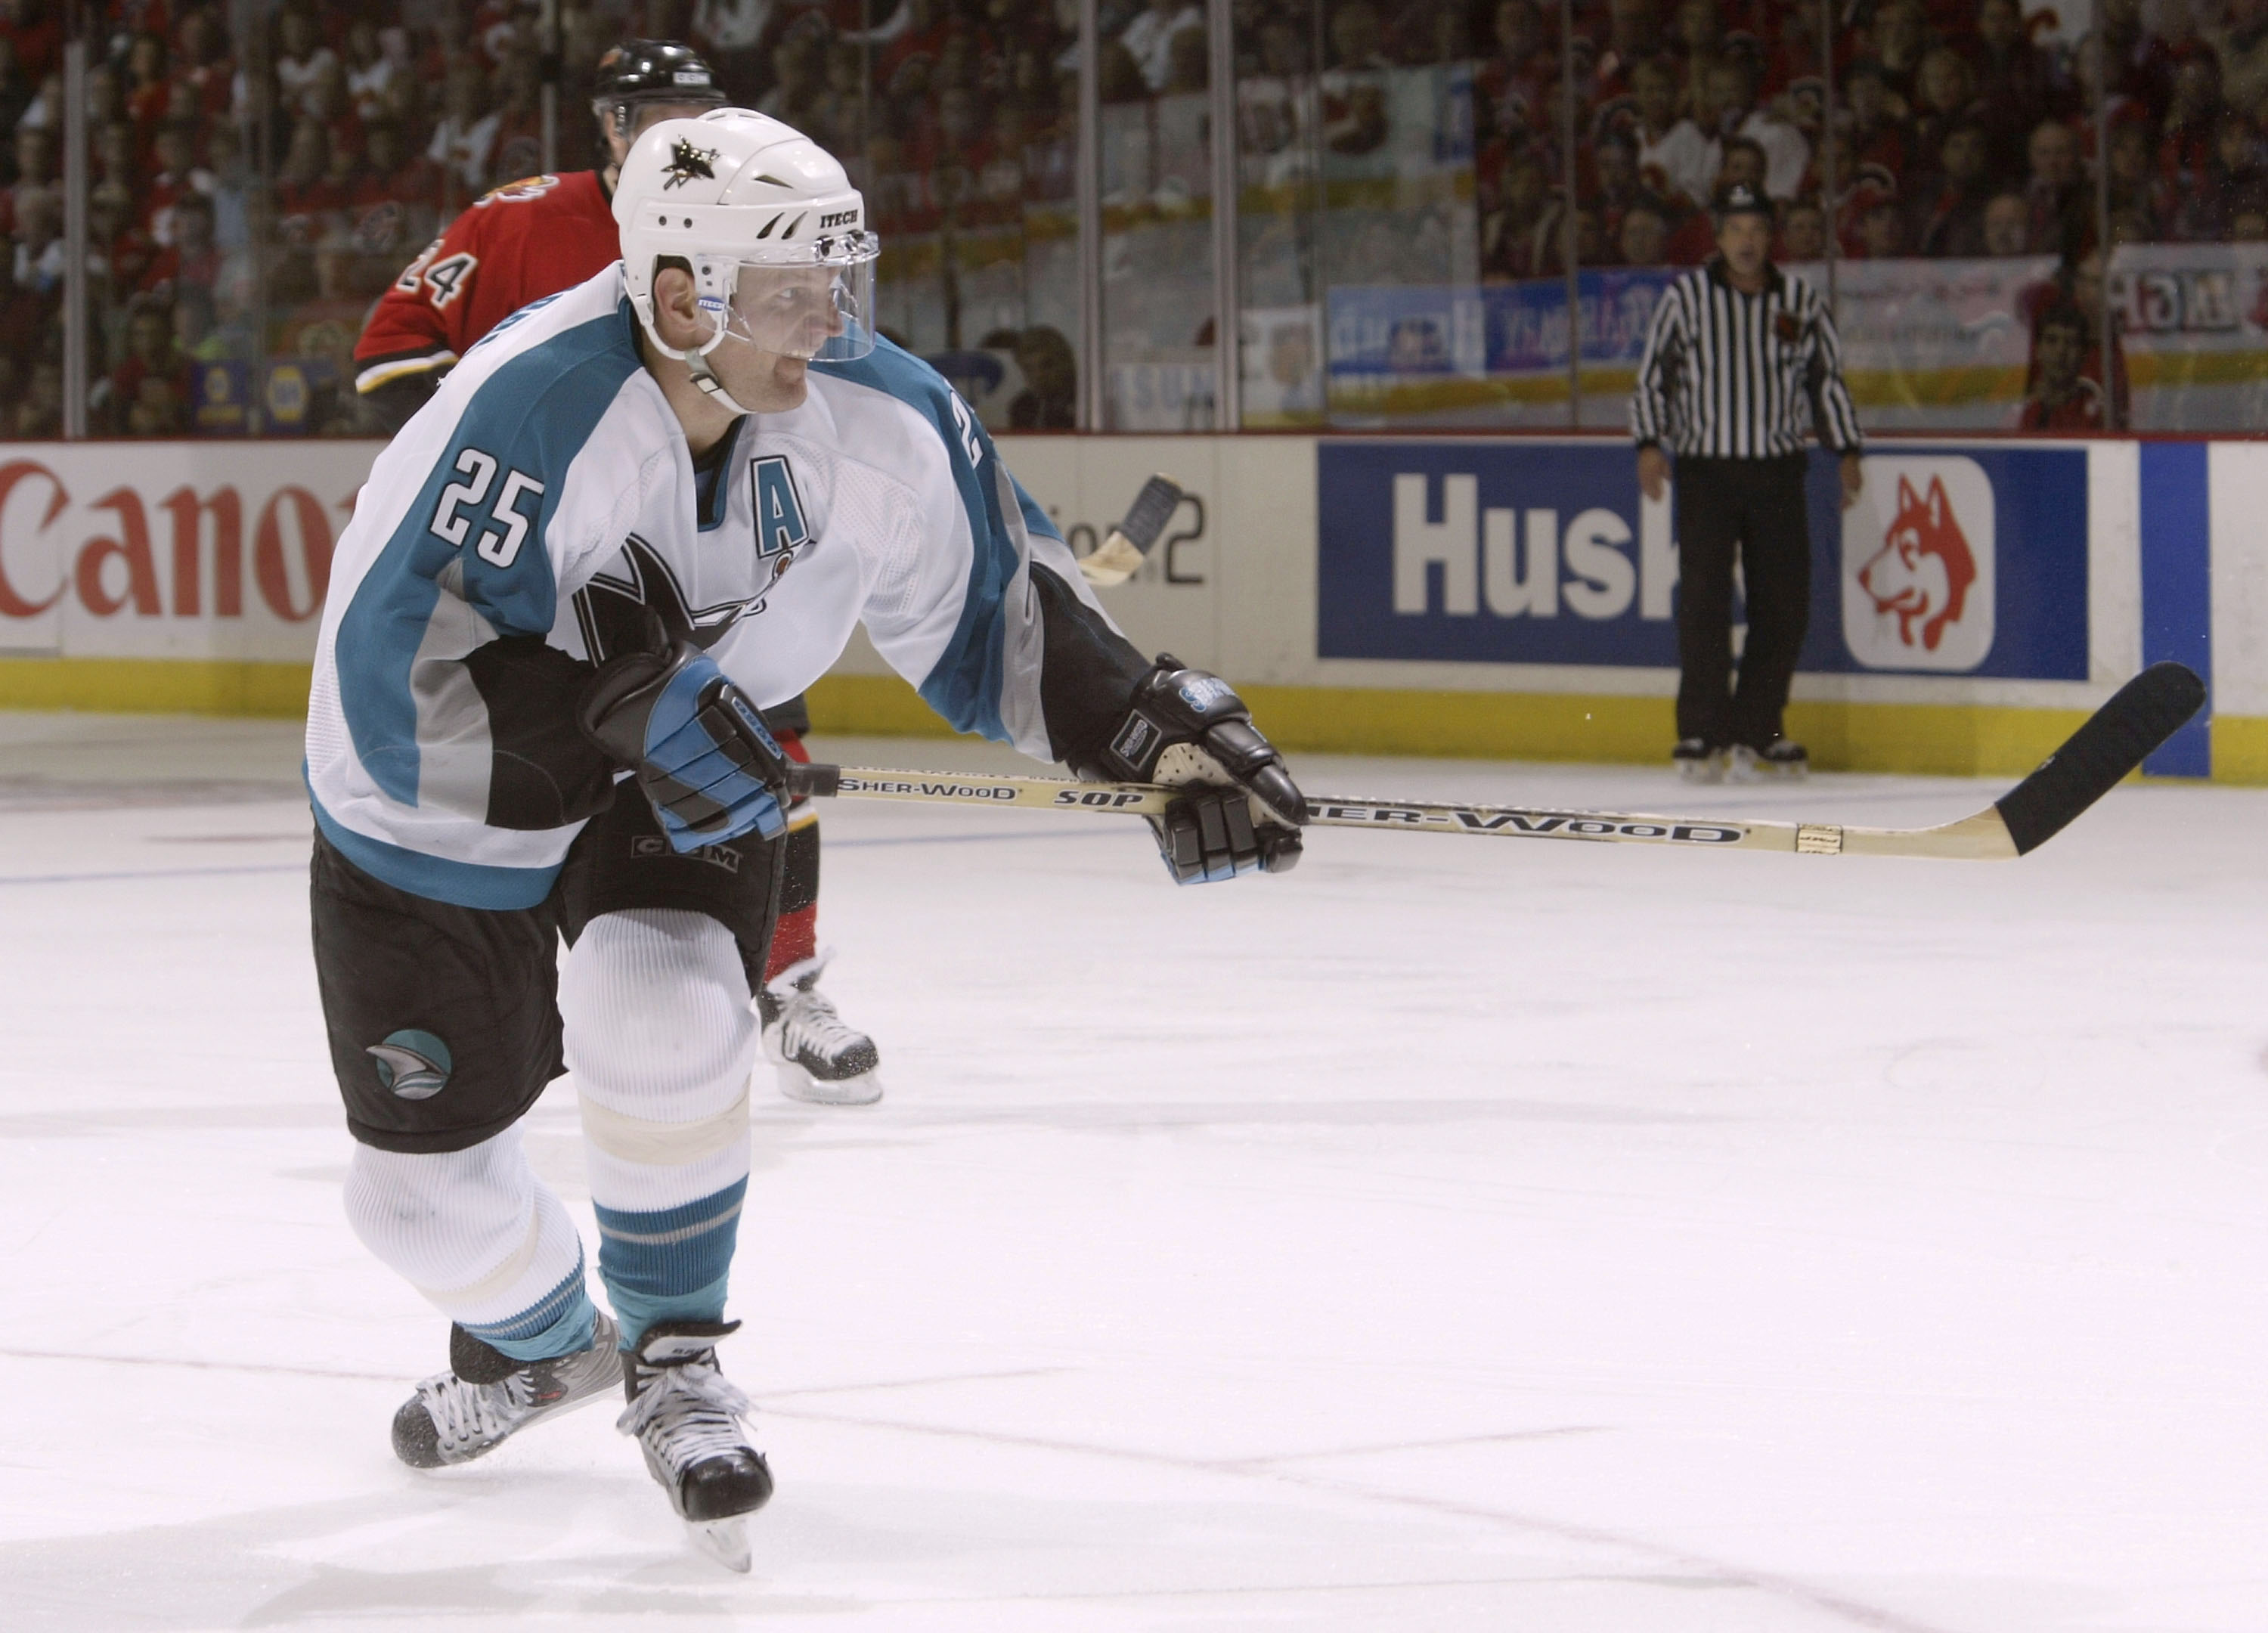 CALGARY, ALBERTA, CANADA - MAY 13:  Vincent Damphousse #25 of the San Jose Sharks scores a goal on a backhand shot against the Calgary Flames during Game three of the 2004 NHL Western Conference Finals on May 13, 2004 at the Pengrowth Saddledome in Calgar